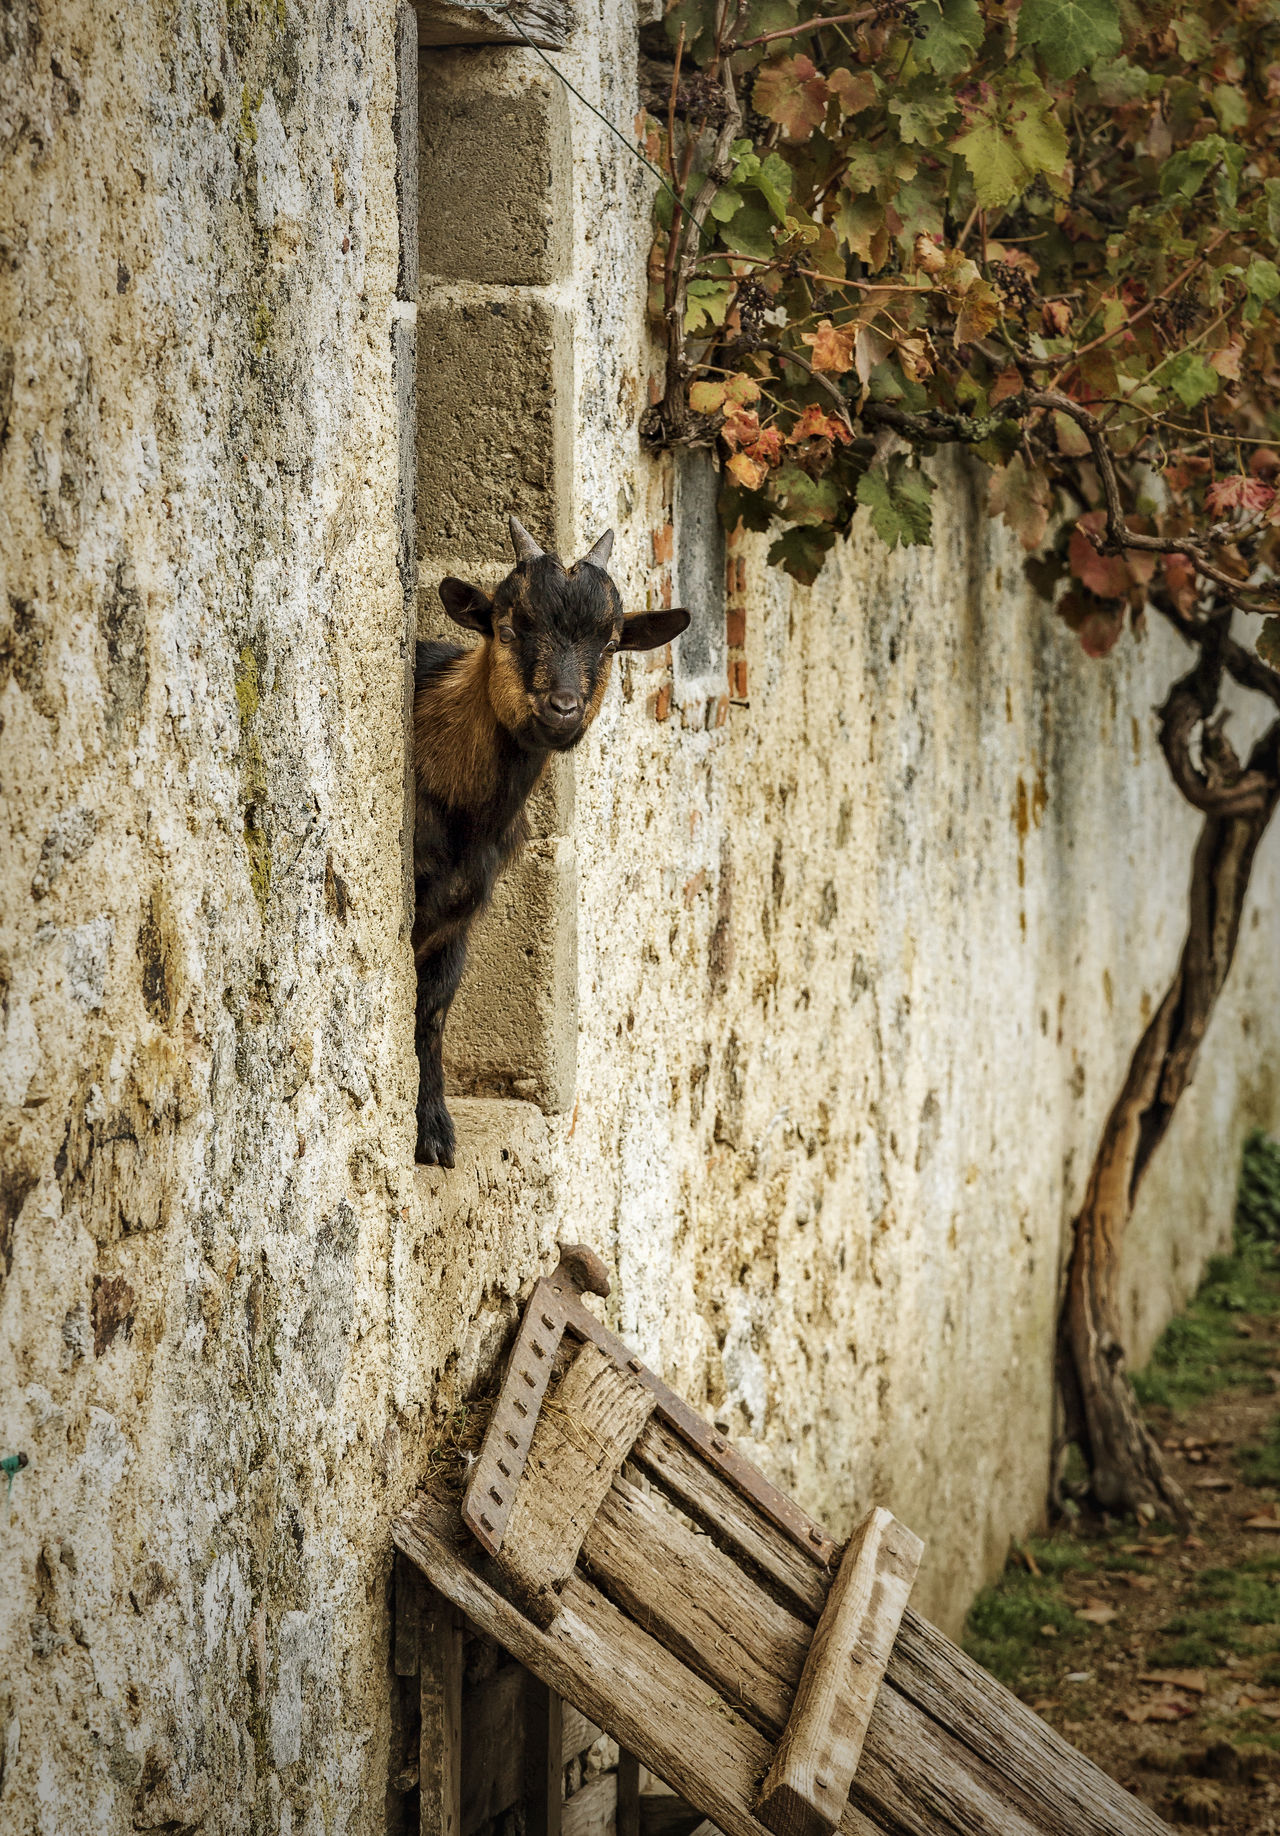 Young goat living on a French gite. Barn Farm Animal France Gite Goat Hiding Kid Peeking Rustic Young Goat